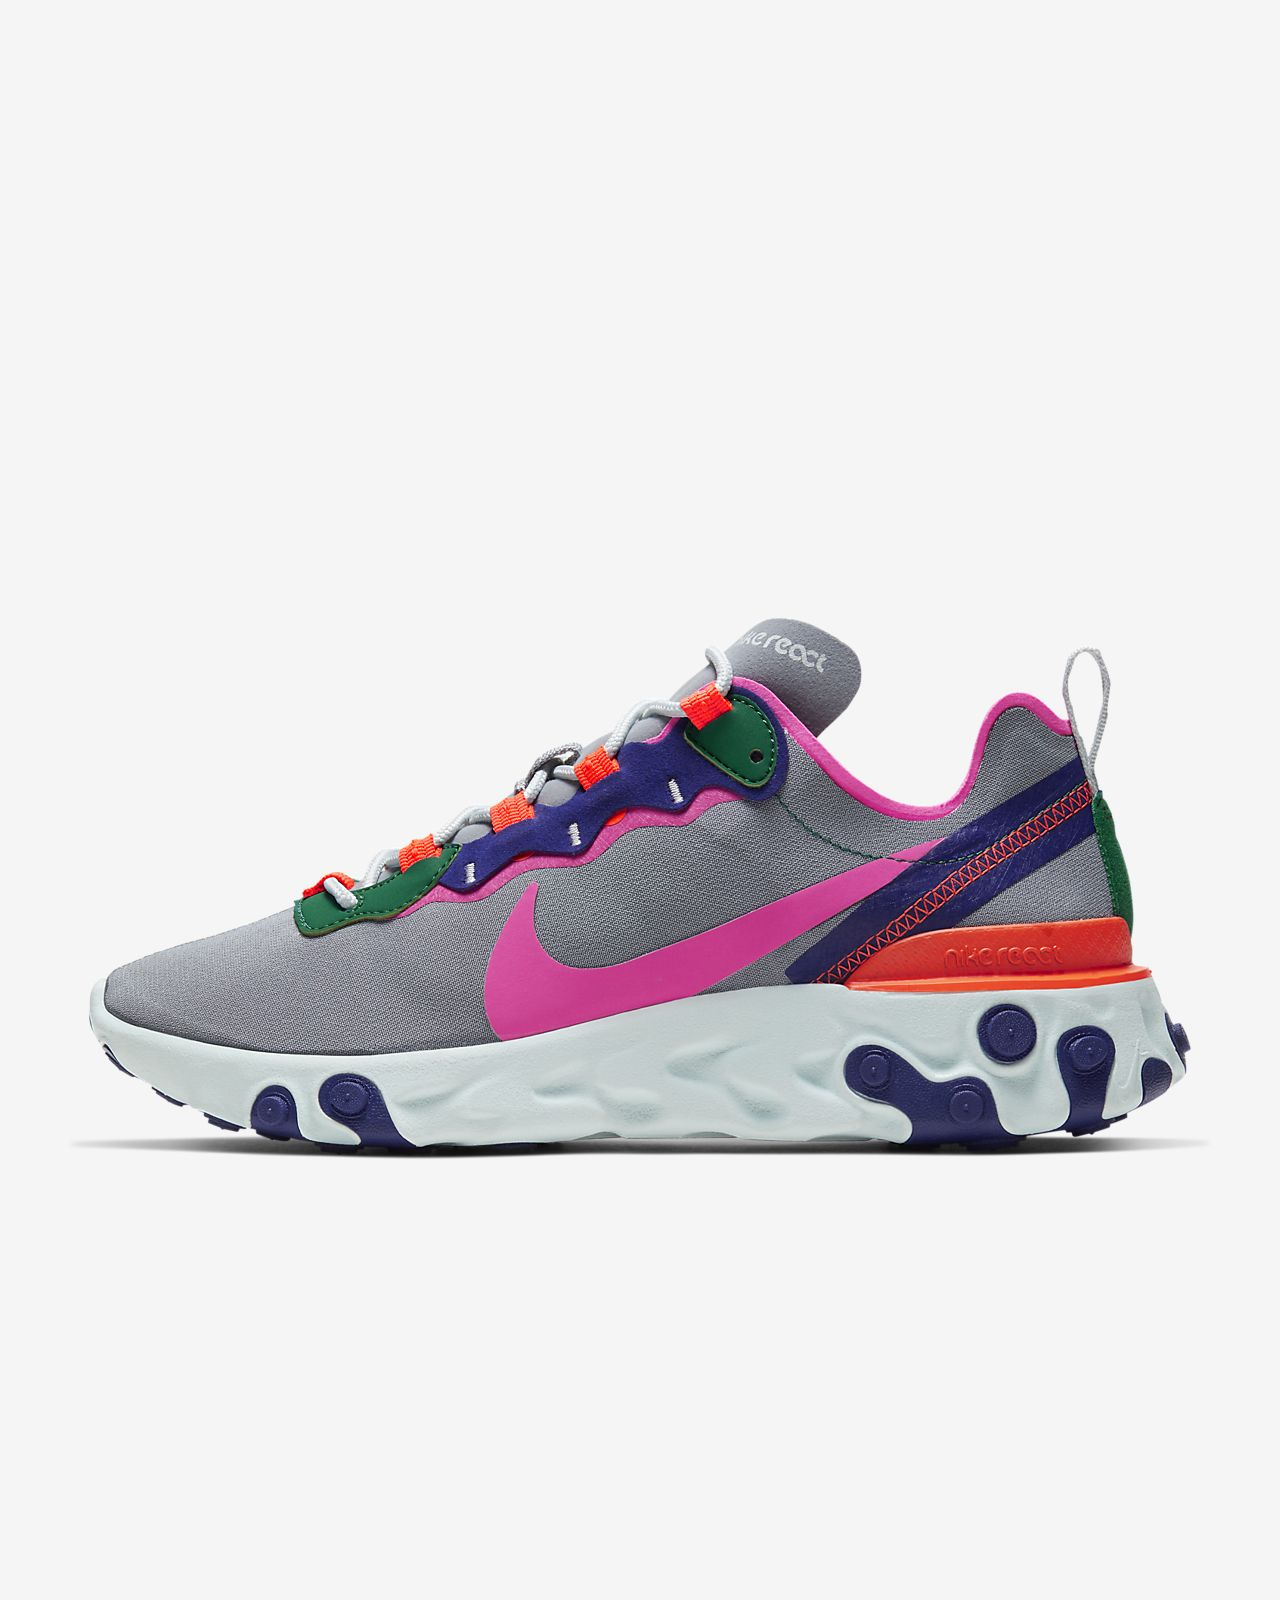 uk availability d56d9 ab537 ... Nike React Element 55 Women s Shoe